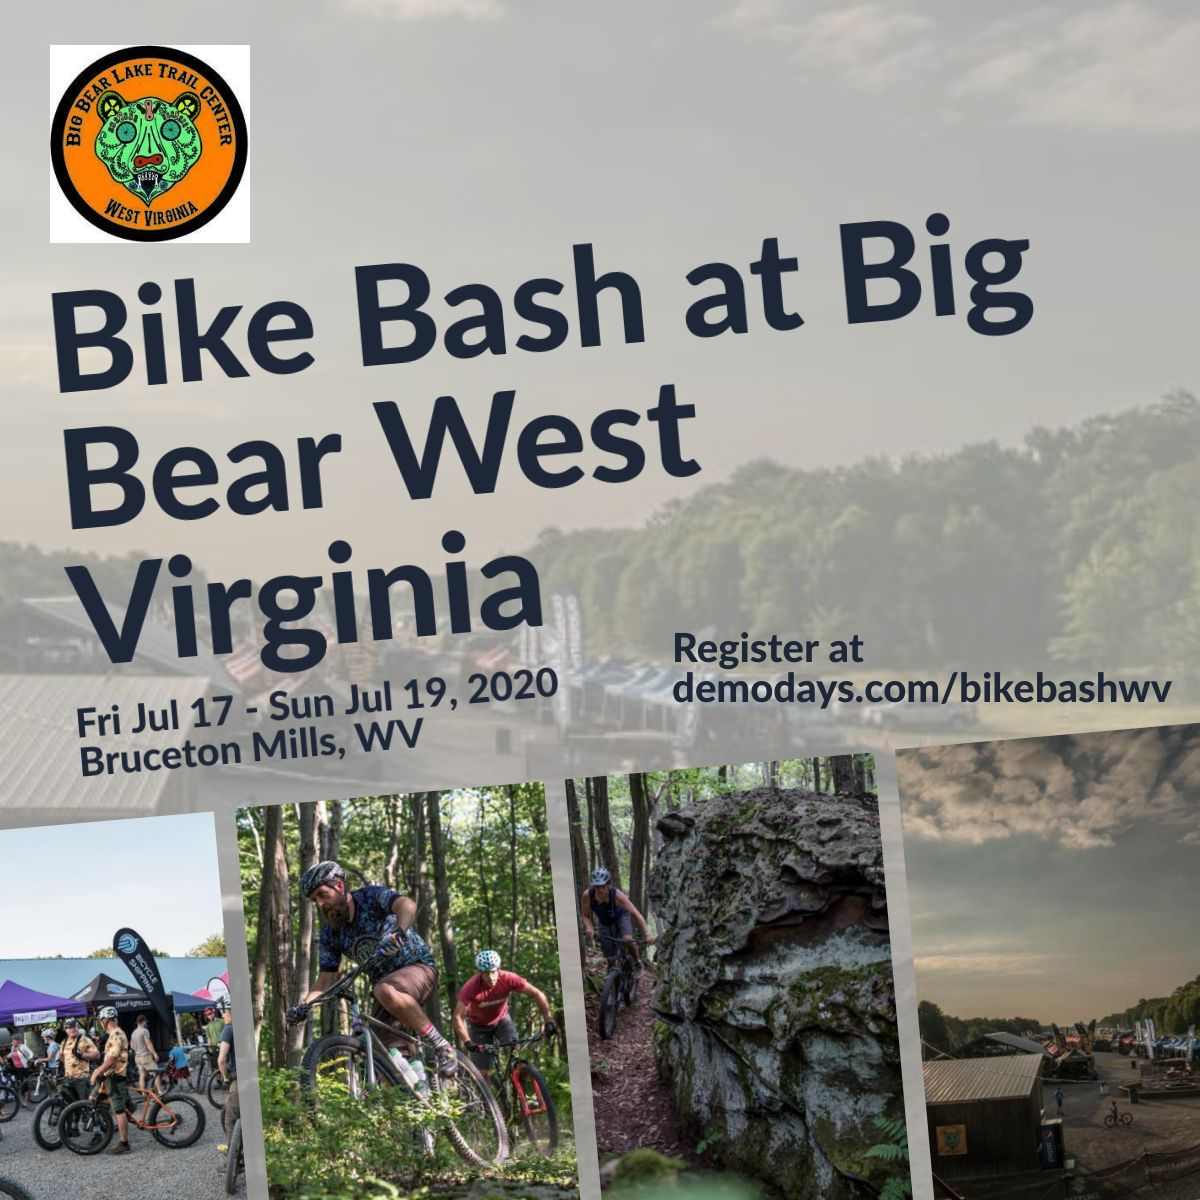 , Bike Bash at Big Bear West Virginia July 17-19th – Previously Dirt Rag Dirt Fest